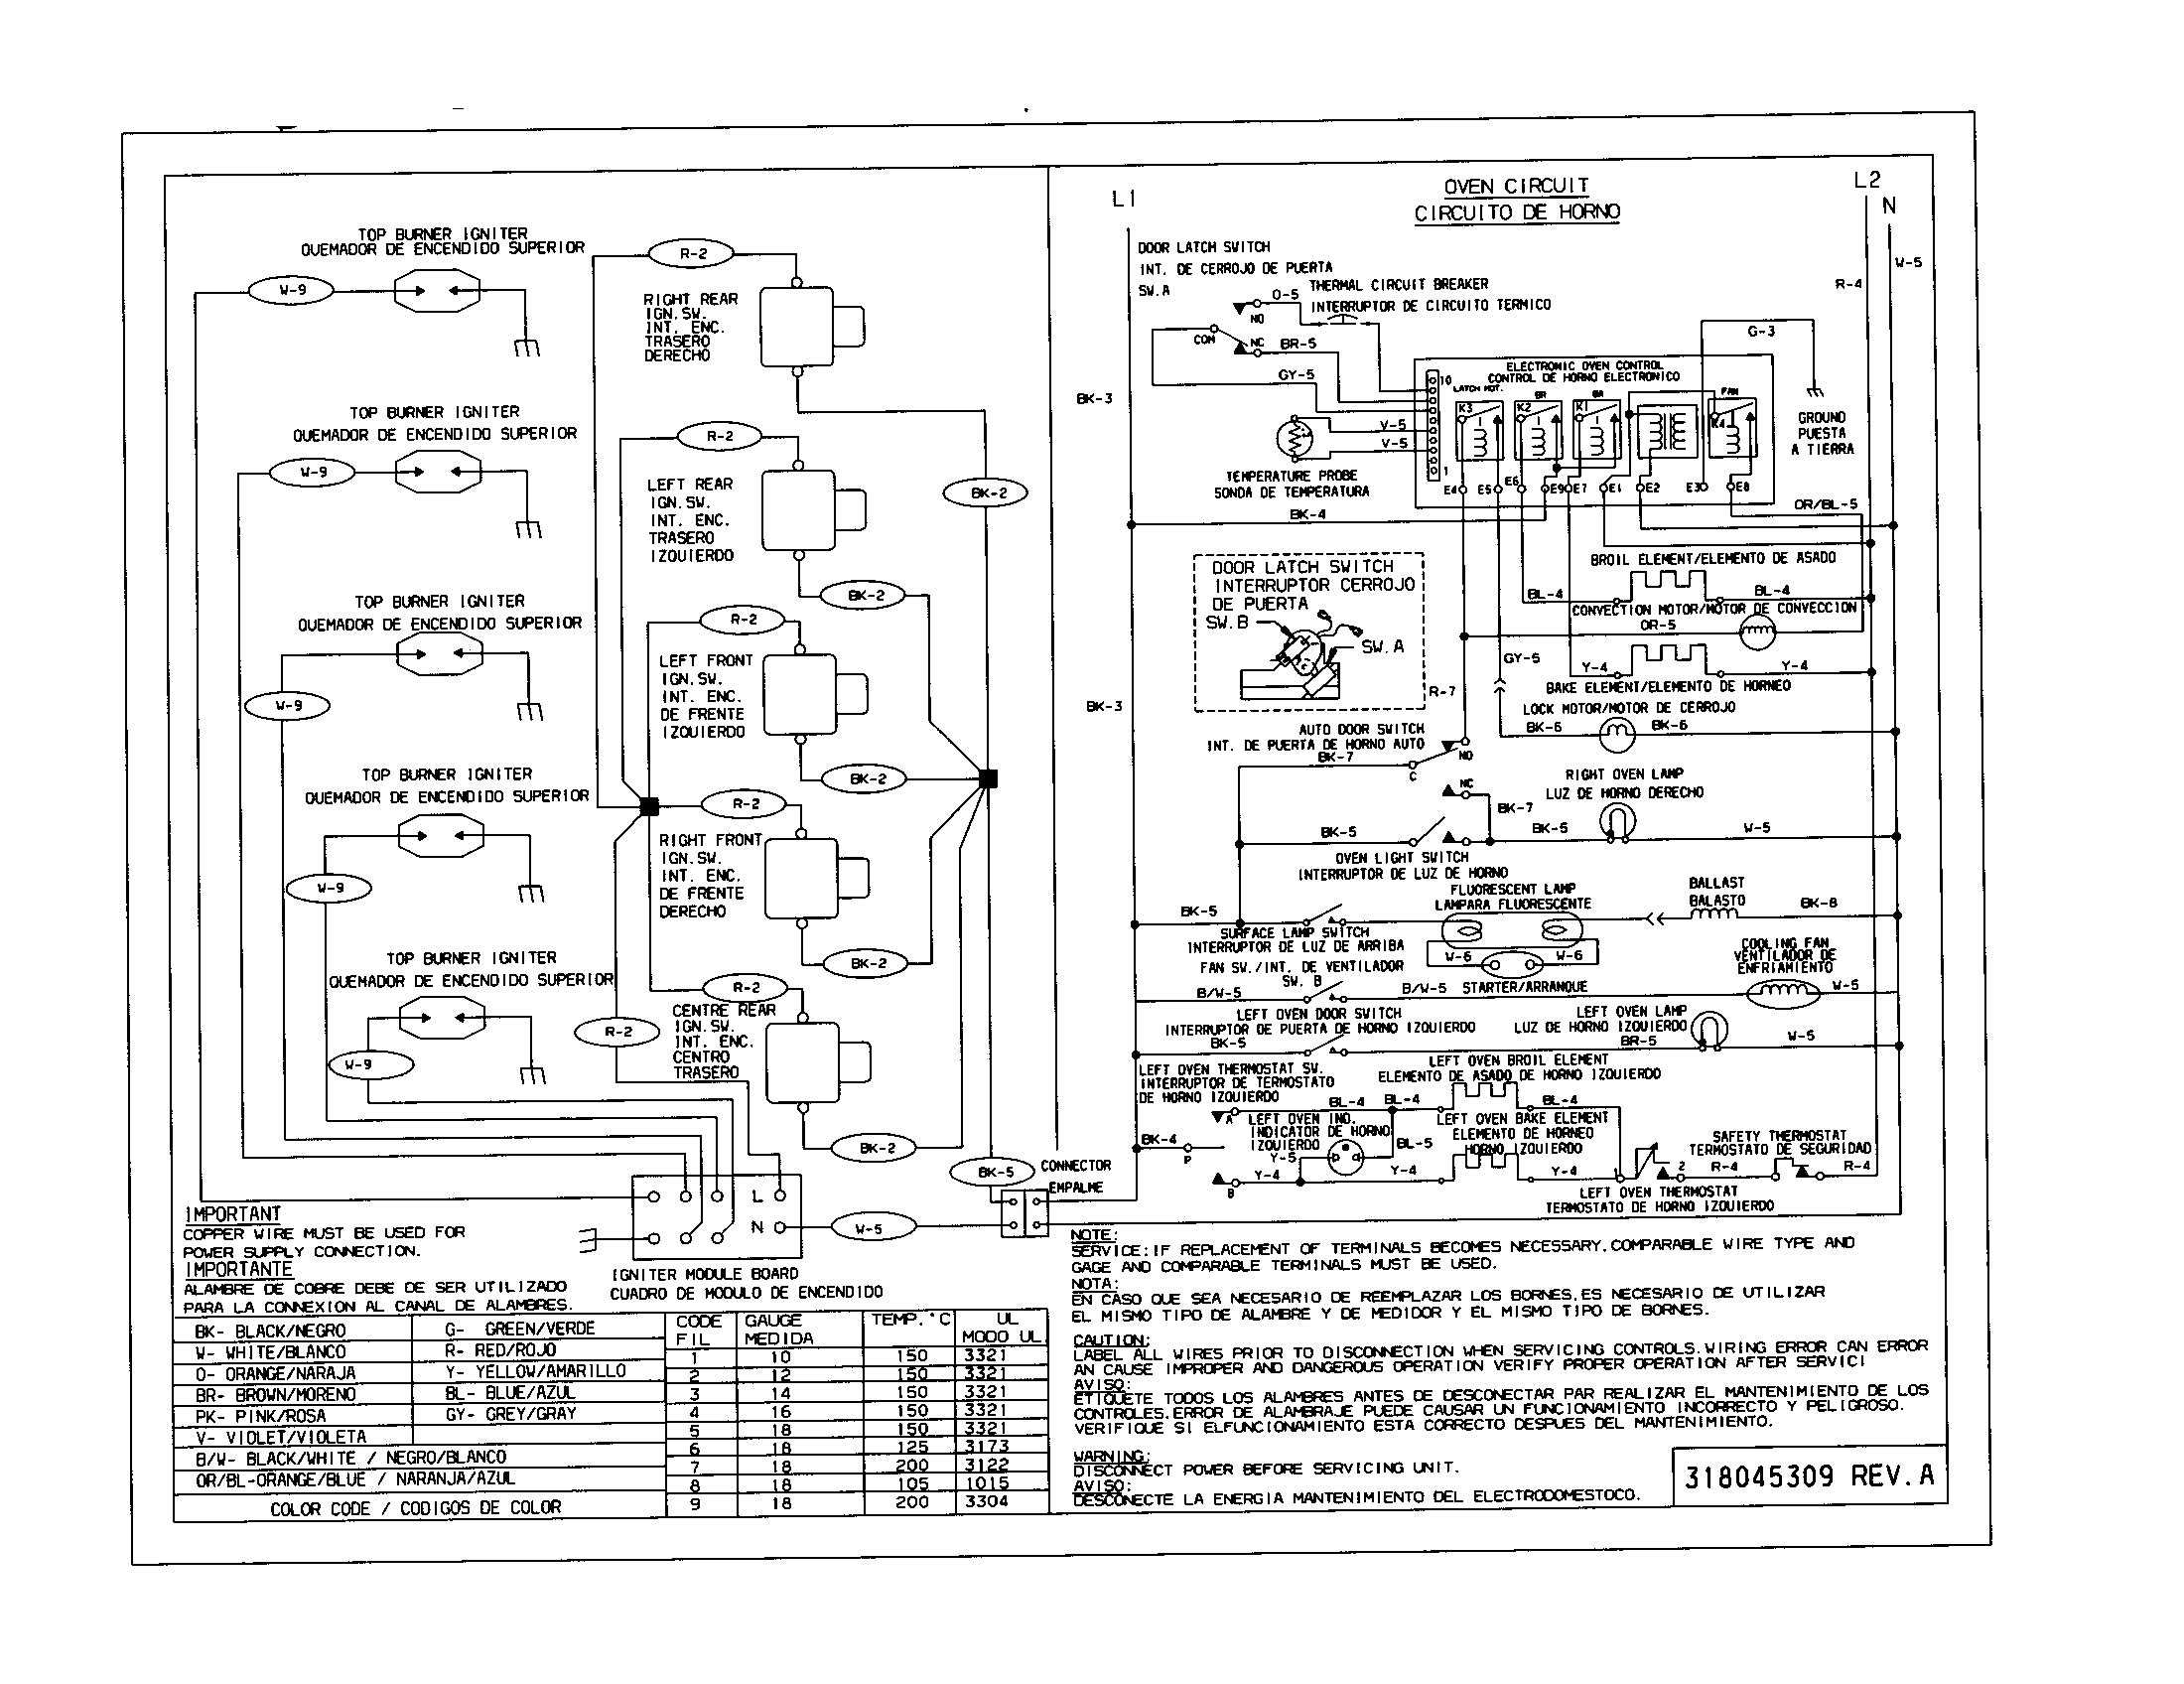 2013 Chevy Cruze Engine Diagram Sensor in addition Discussion T2950 ds616402 besides 94 Acura Integra Fuse Box Diagram Wiring Photos in addition IC0v 15033 as well Page4. on 2003 acura rsx fuse box diagram